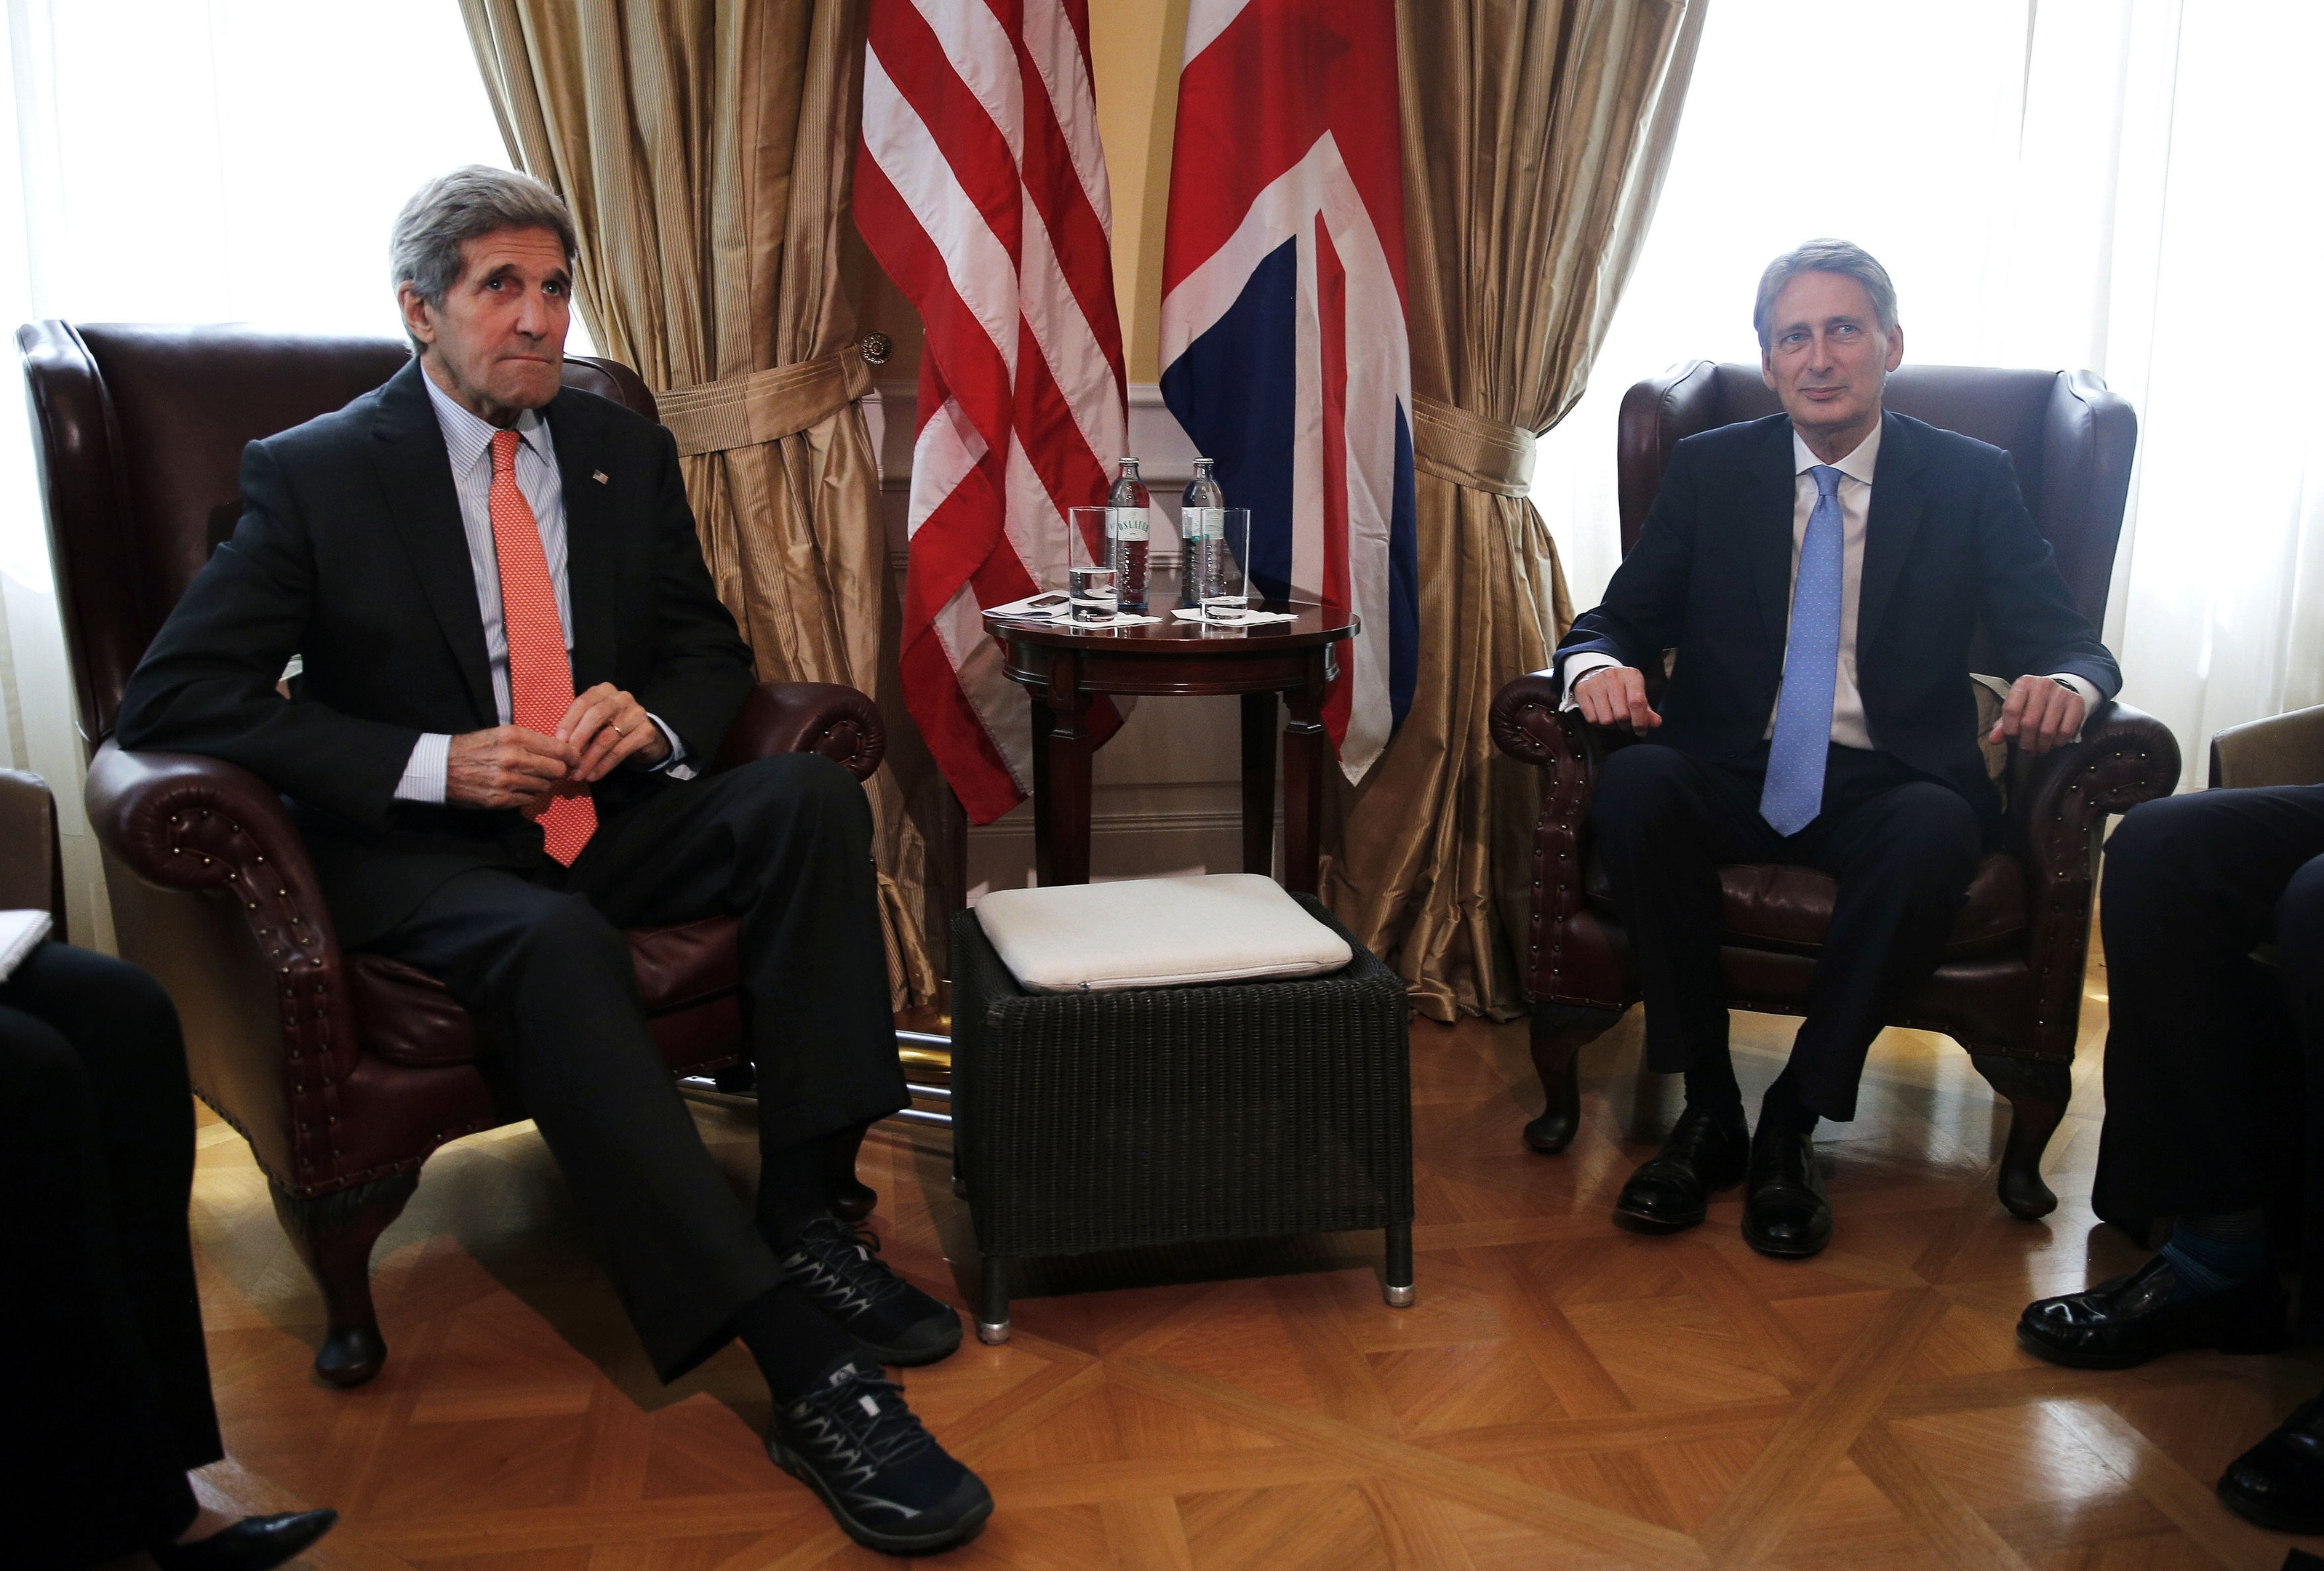 U.S. Secretary of State John Kerry, left, meets with British Foreign Secretary Philip Hammond at a hotel where the Iran nuclear talks meetings are being held in Vienna, Austria, Thursday, July 2, 2015